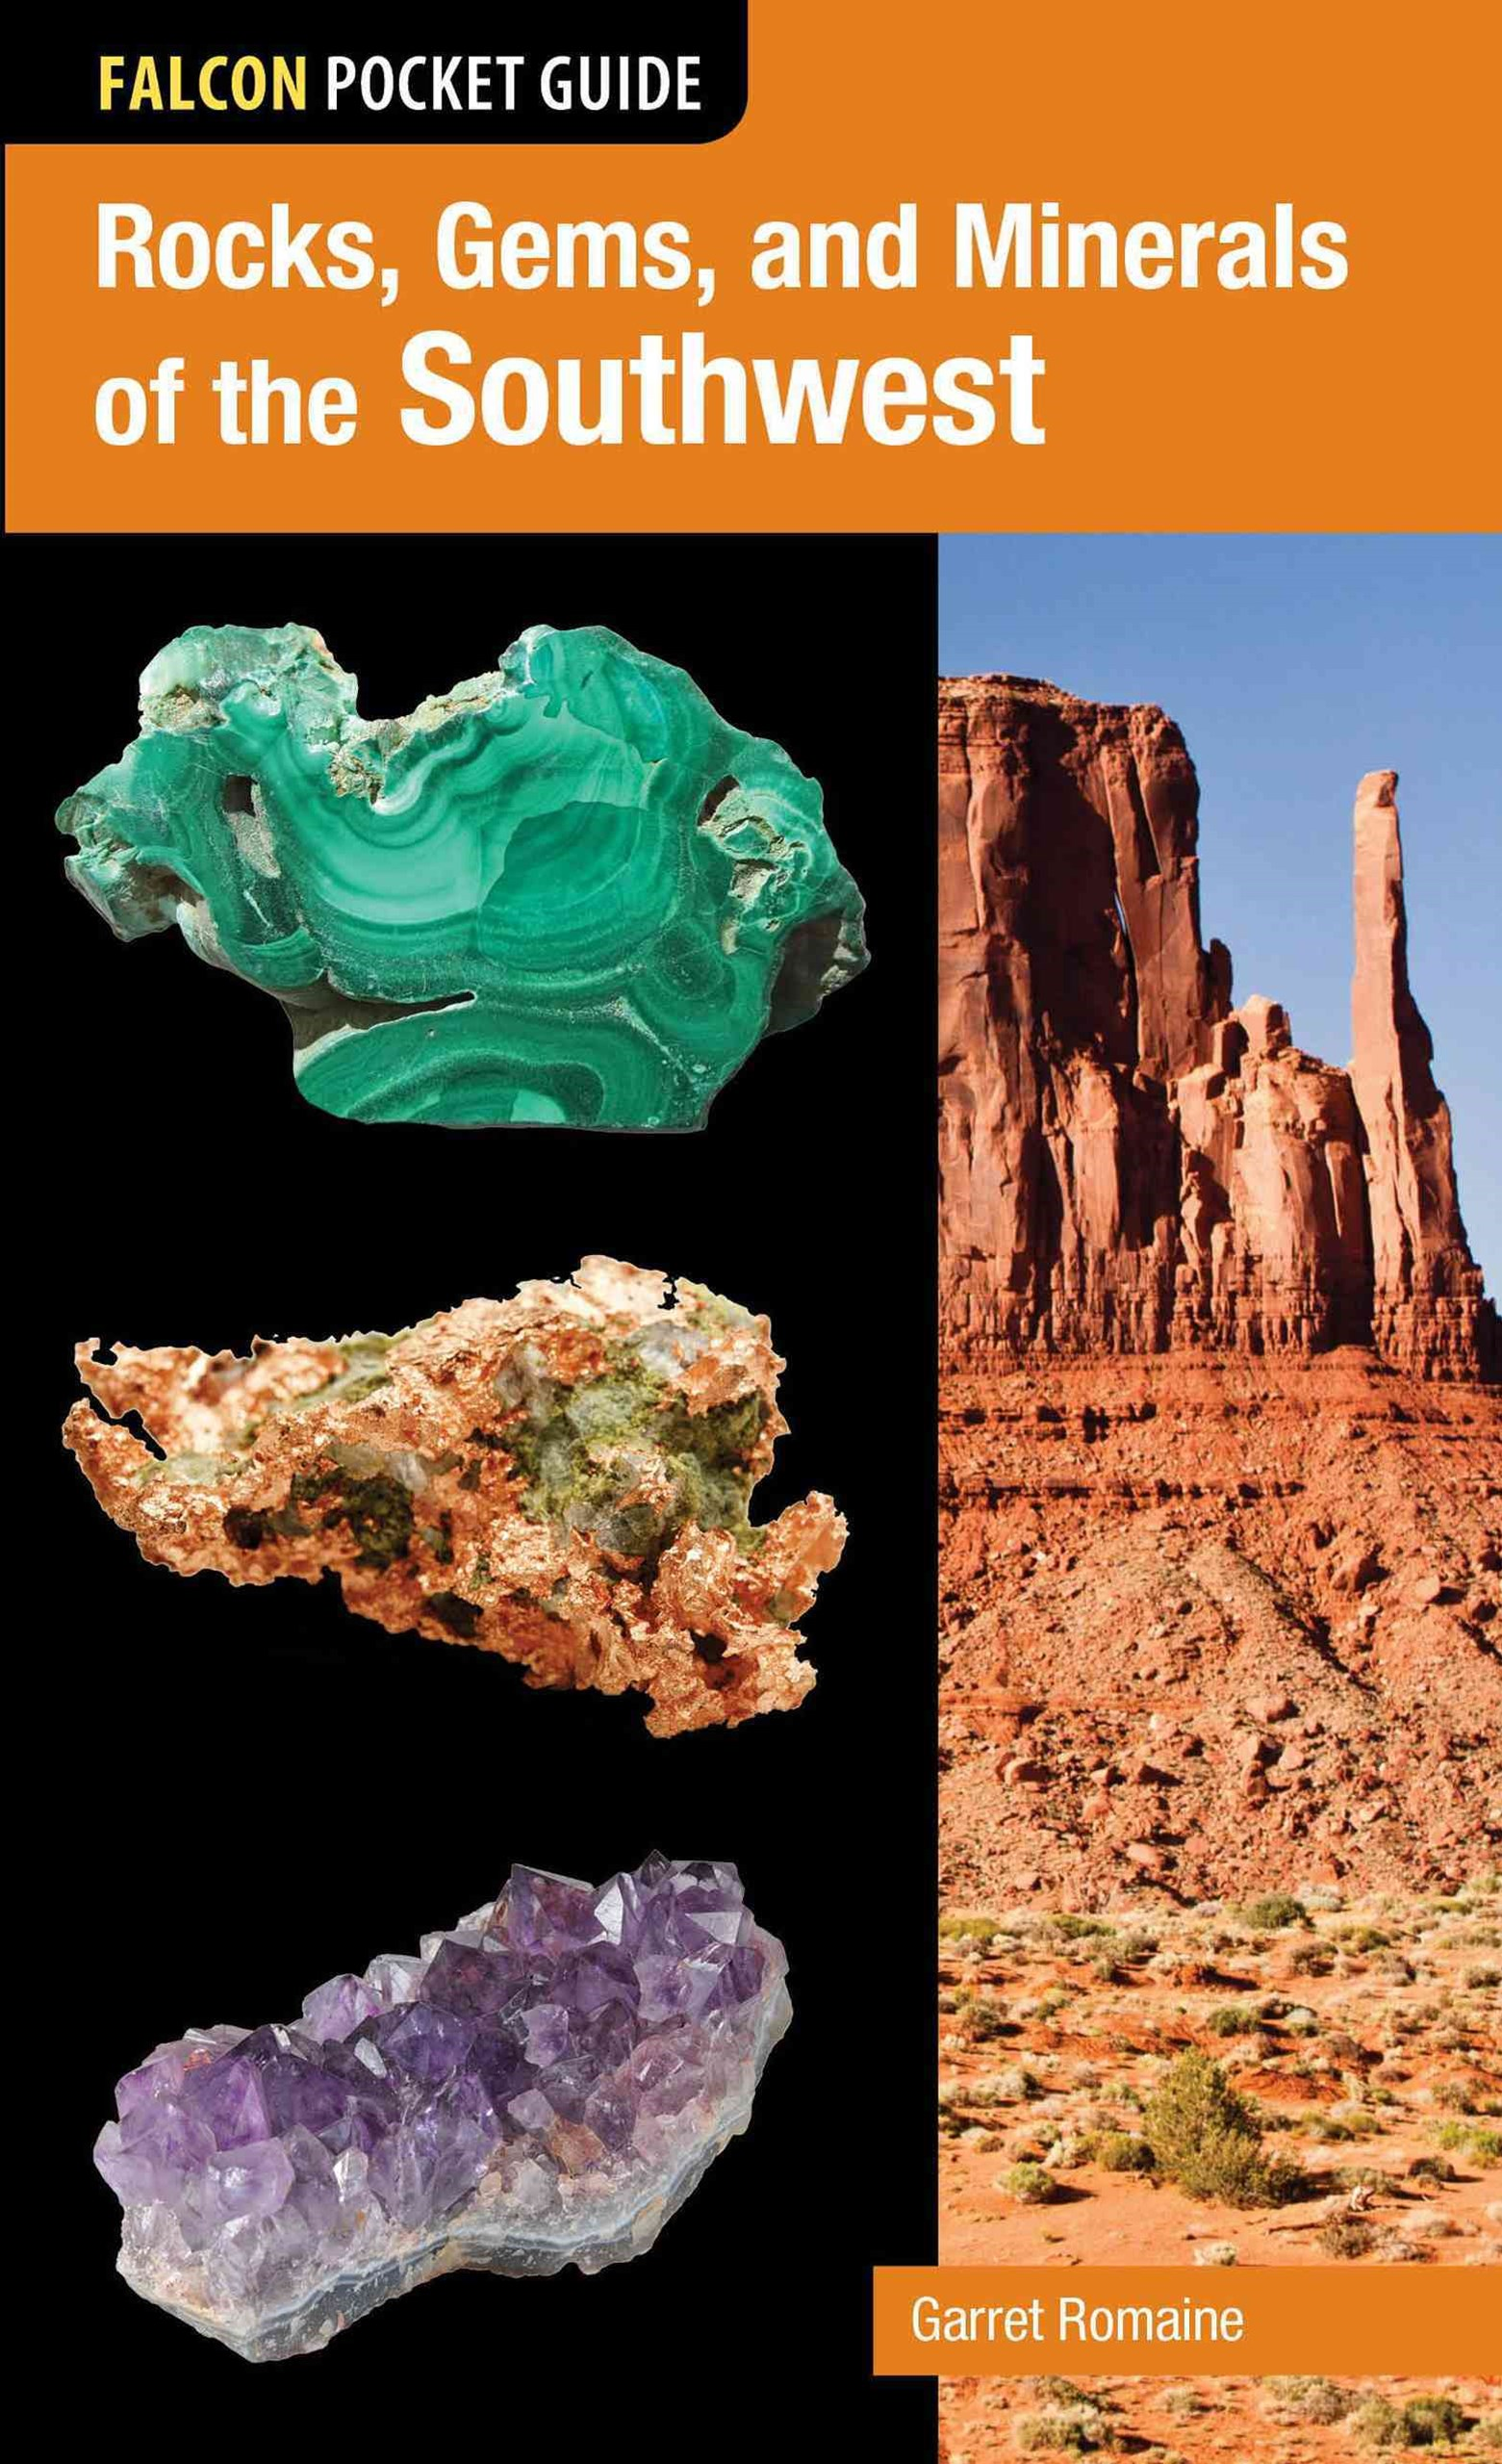 Rocks, Gems, and Minerals of the Southwest